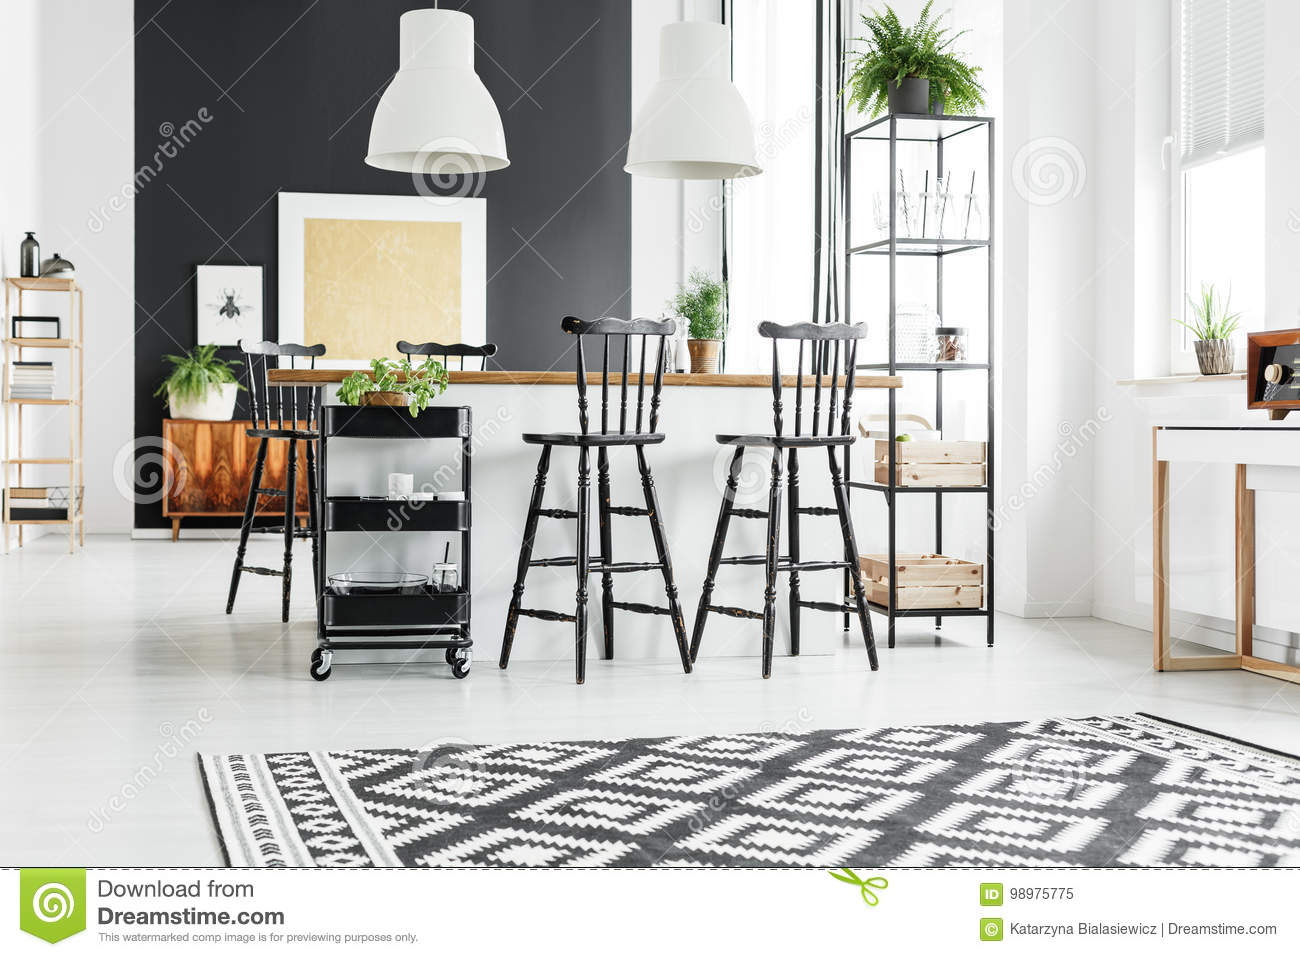 Rustic Kitchen With Bar Stools Stock Image Image Of Loft